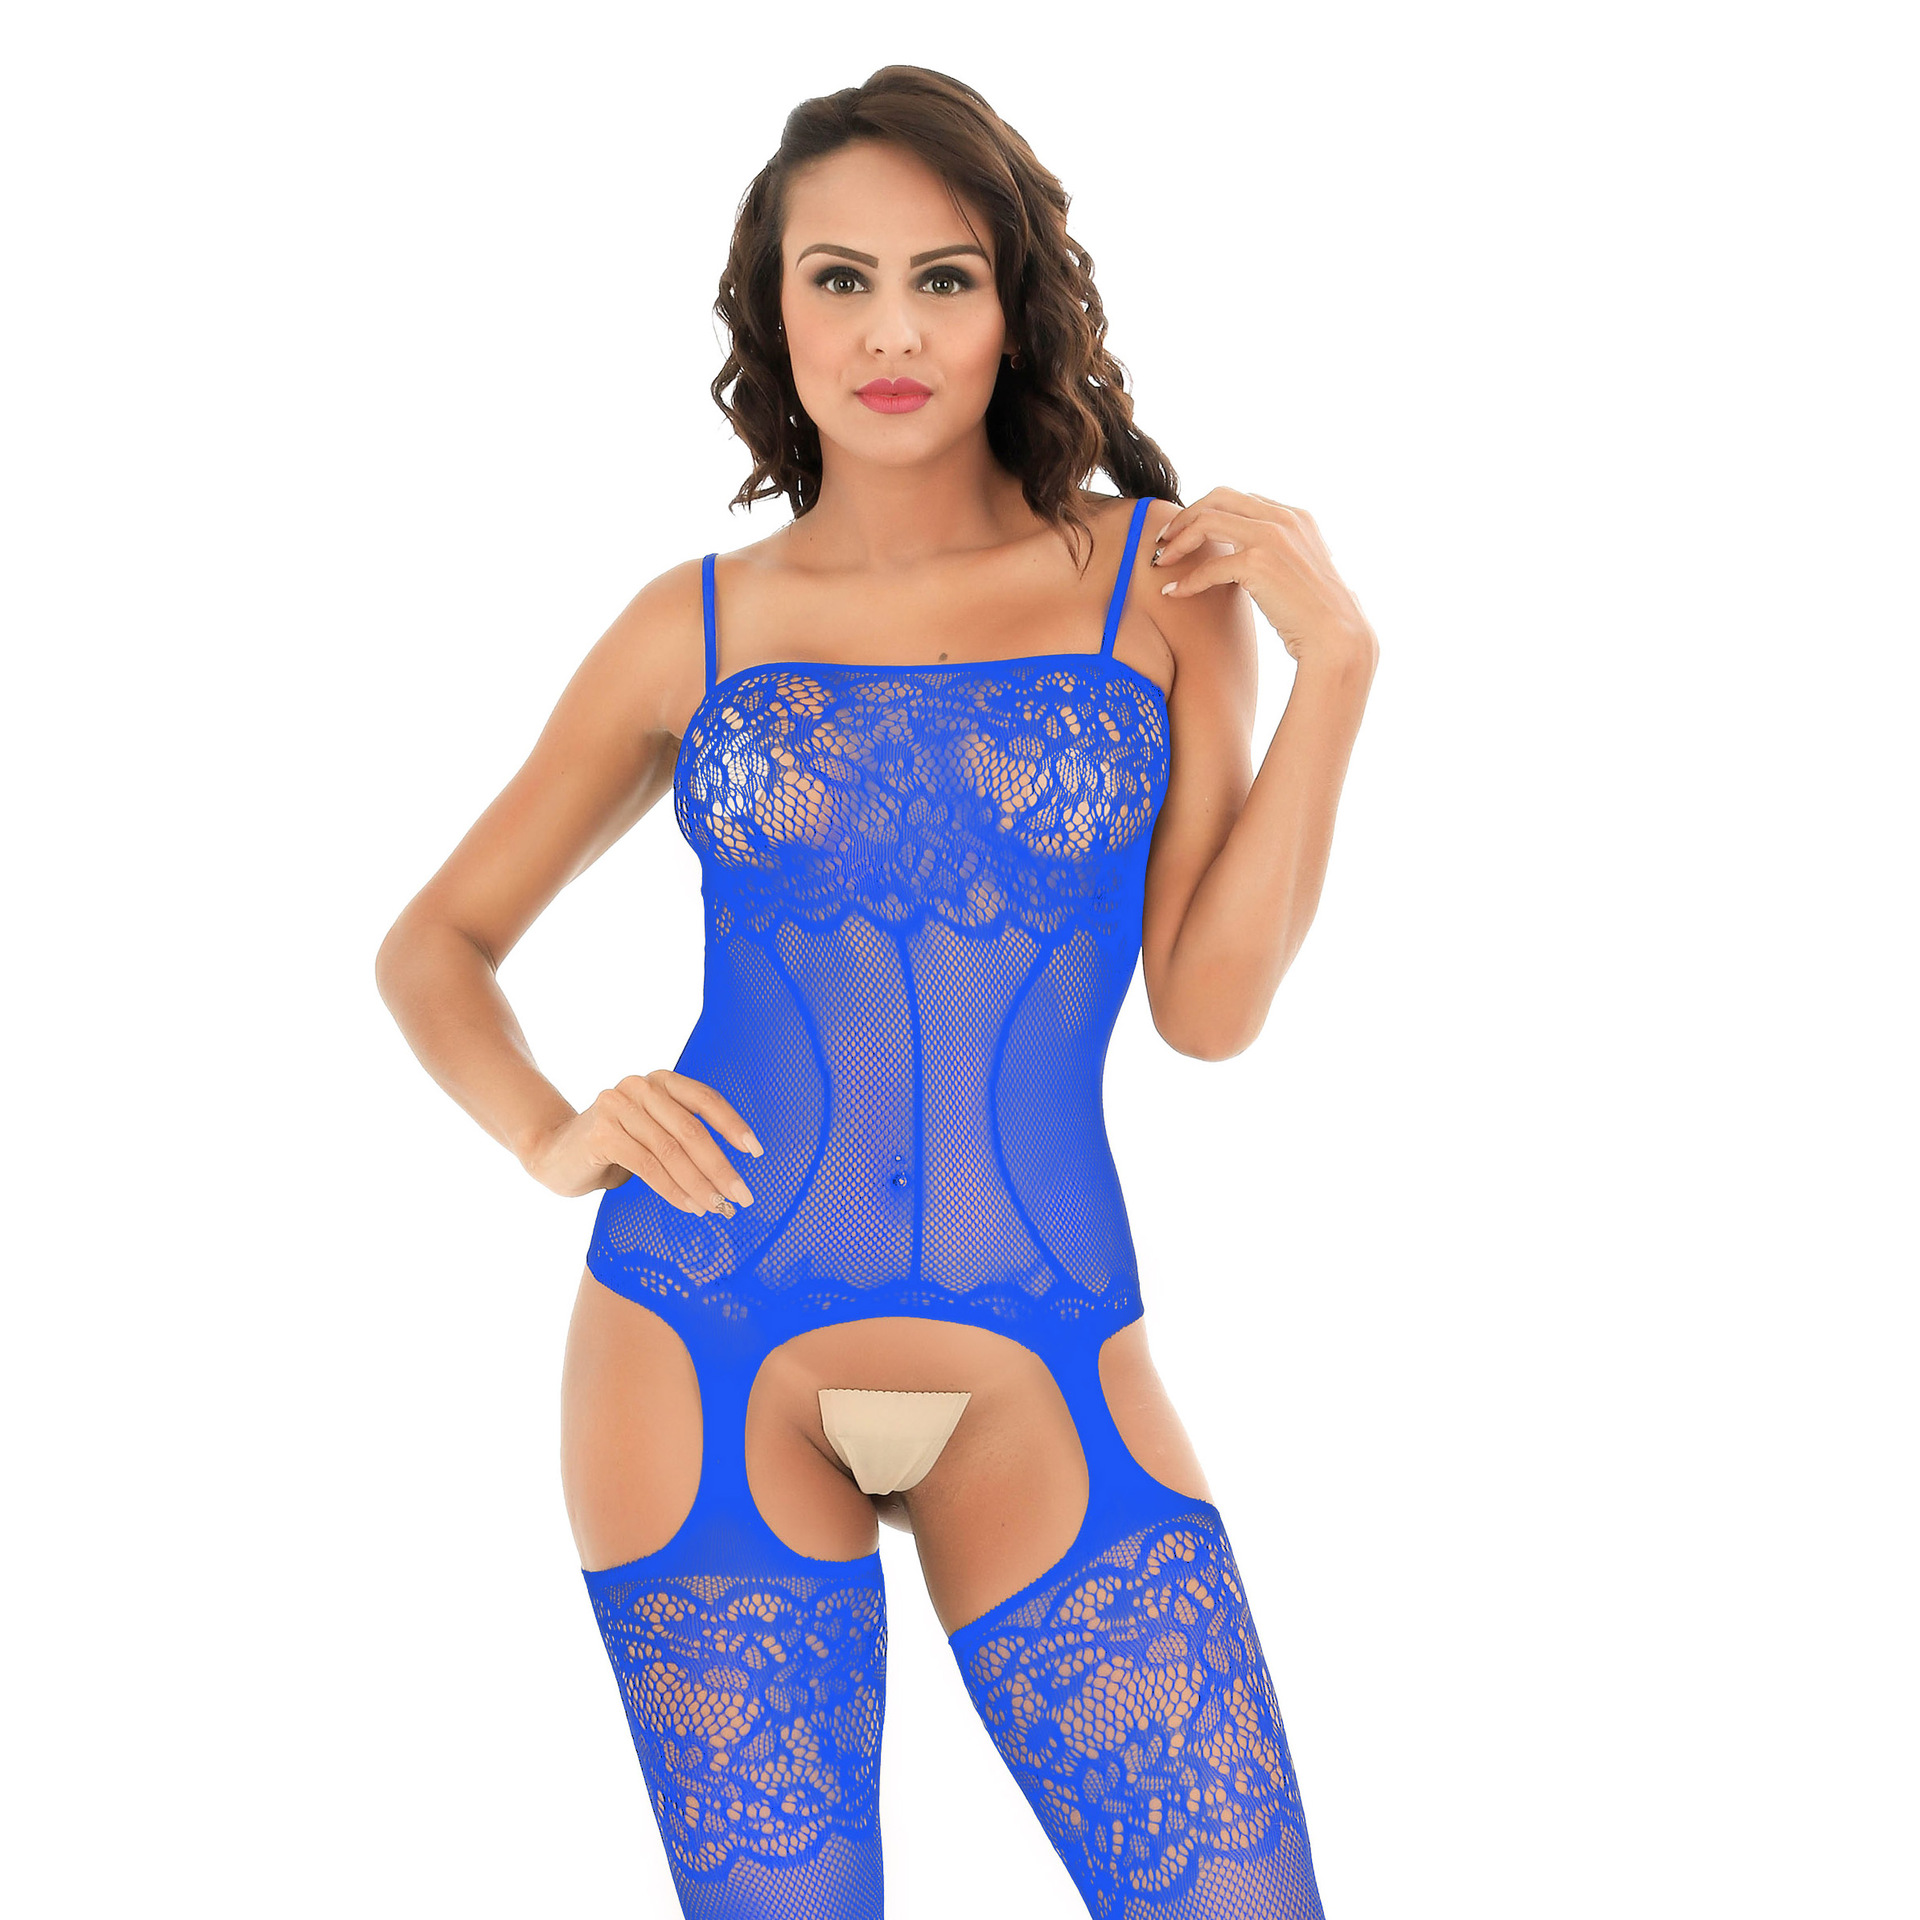 Sexy Fishnet Bodysuit Women Sex Clothes Transparent Open Crotch Bodystocking Erotic Lingerie Teddies One Piece Body Suits Tights